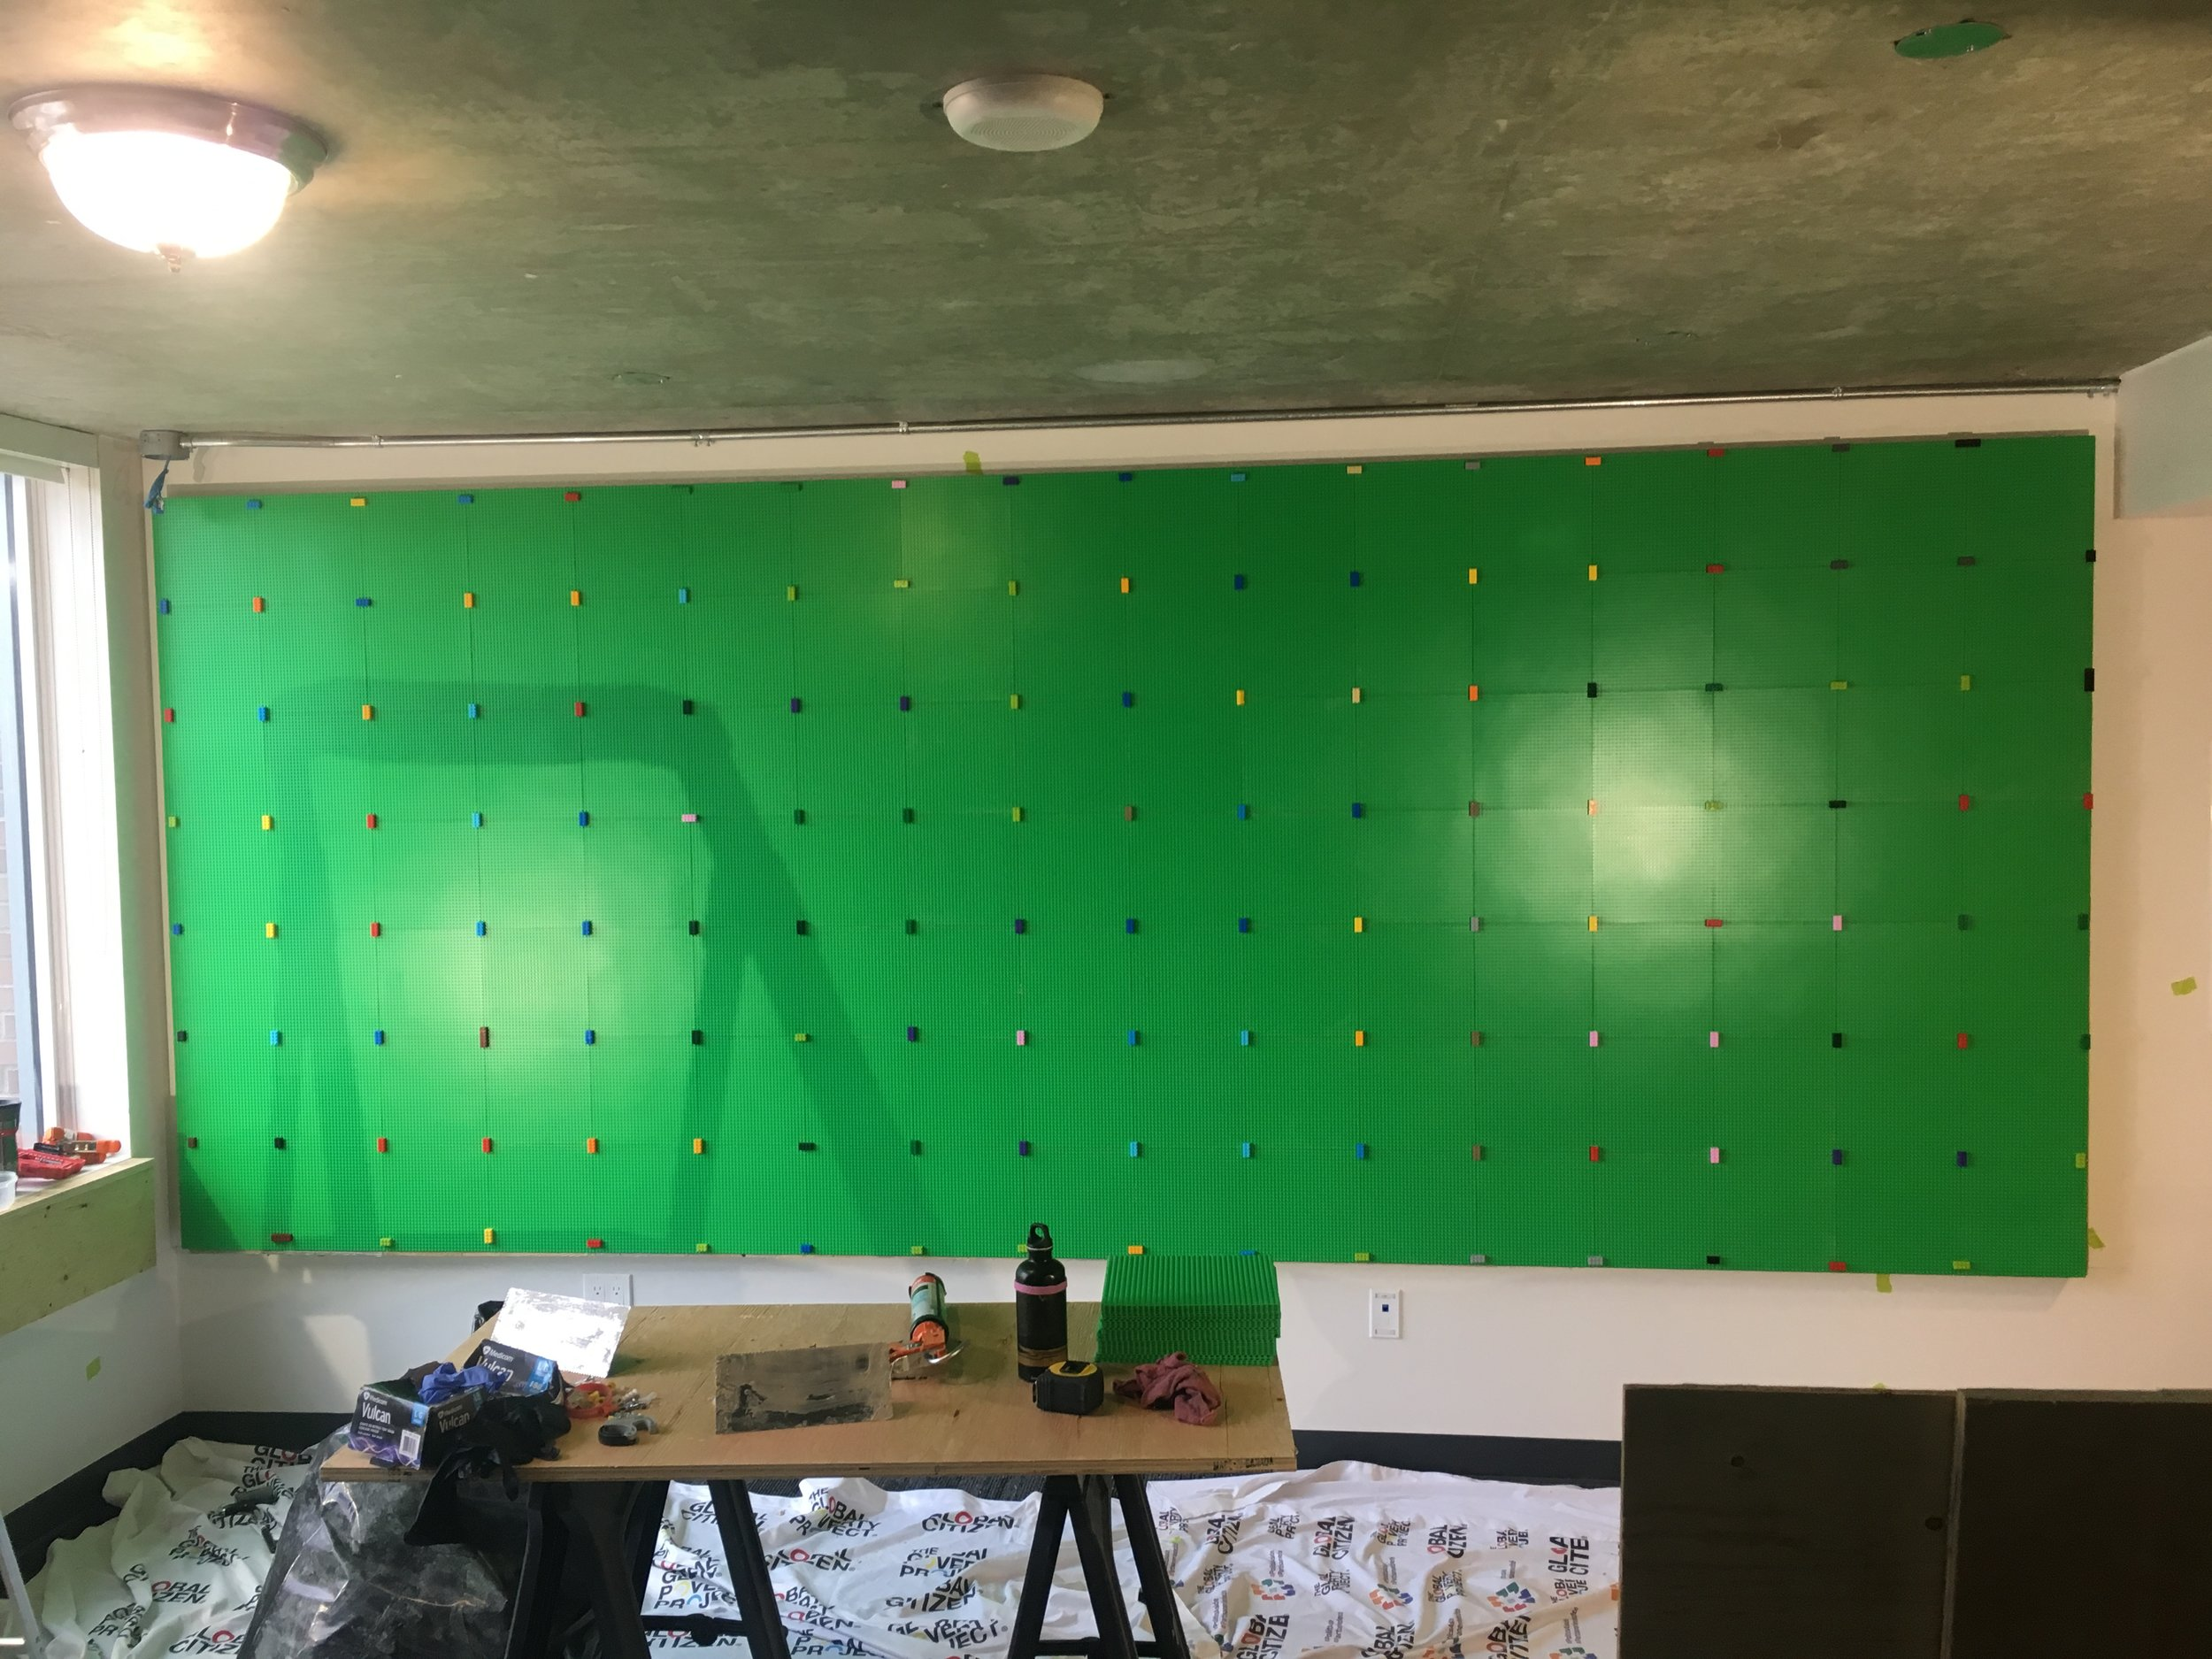 Wall completed. Each tile is held to the next with a piece of LEGO to ensure everything stays in place.